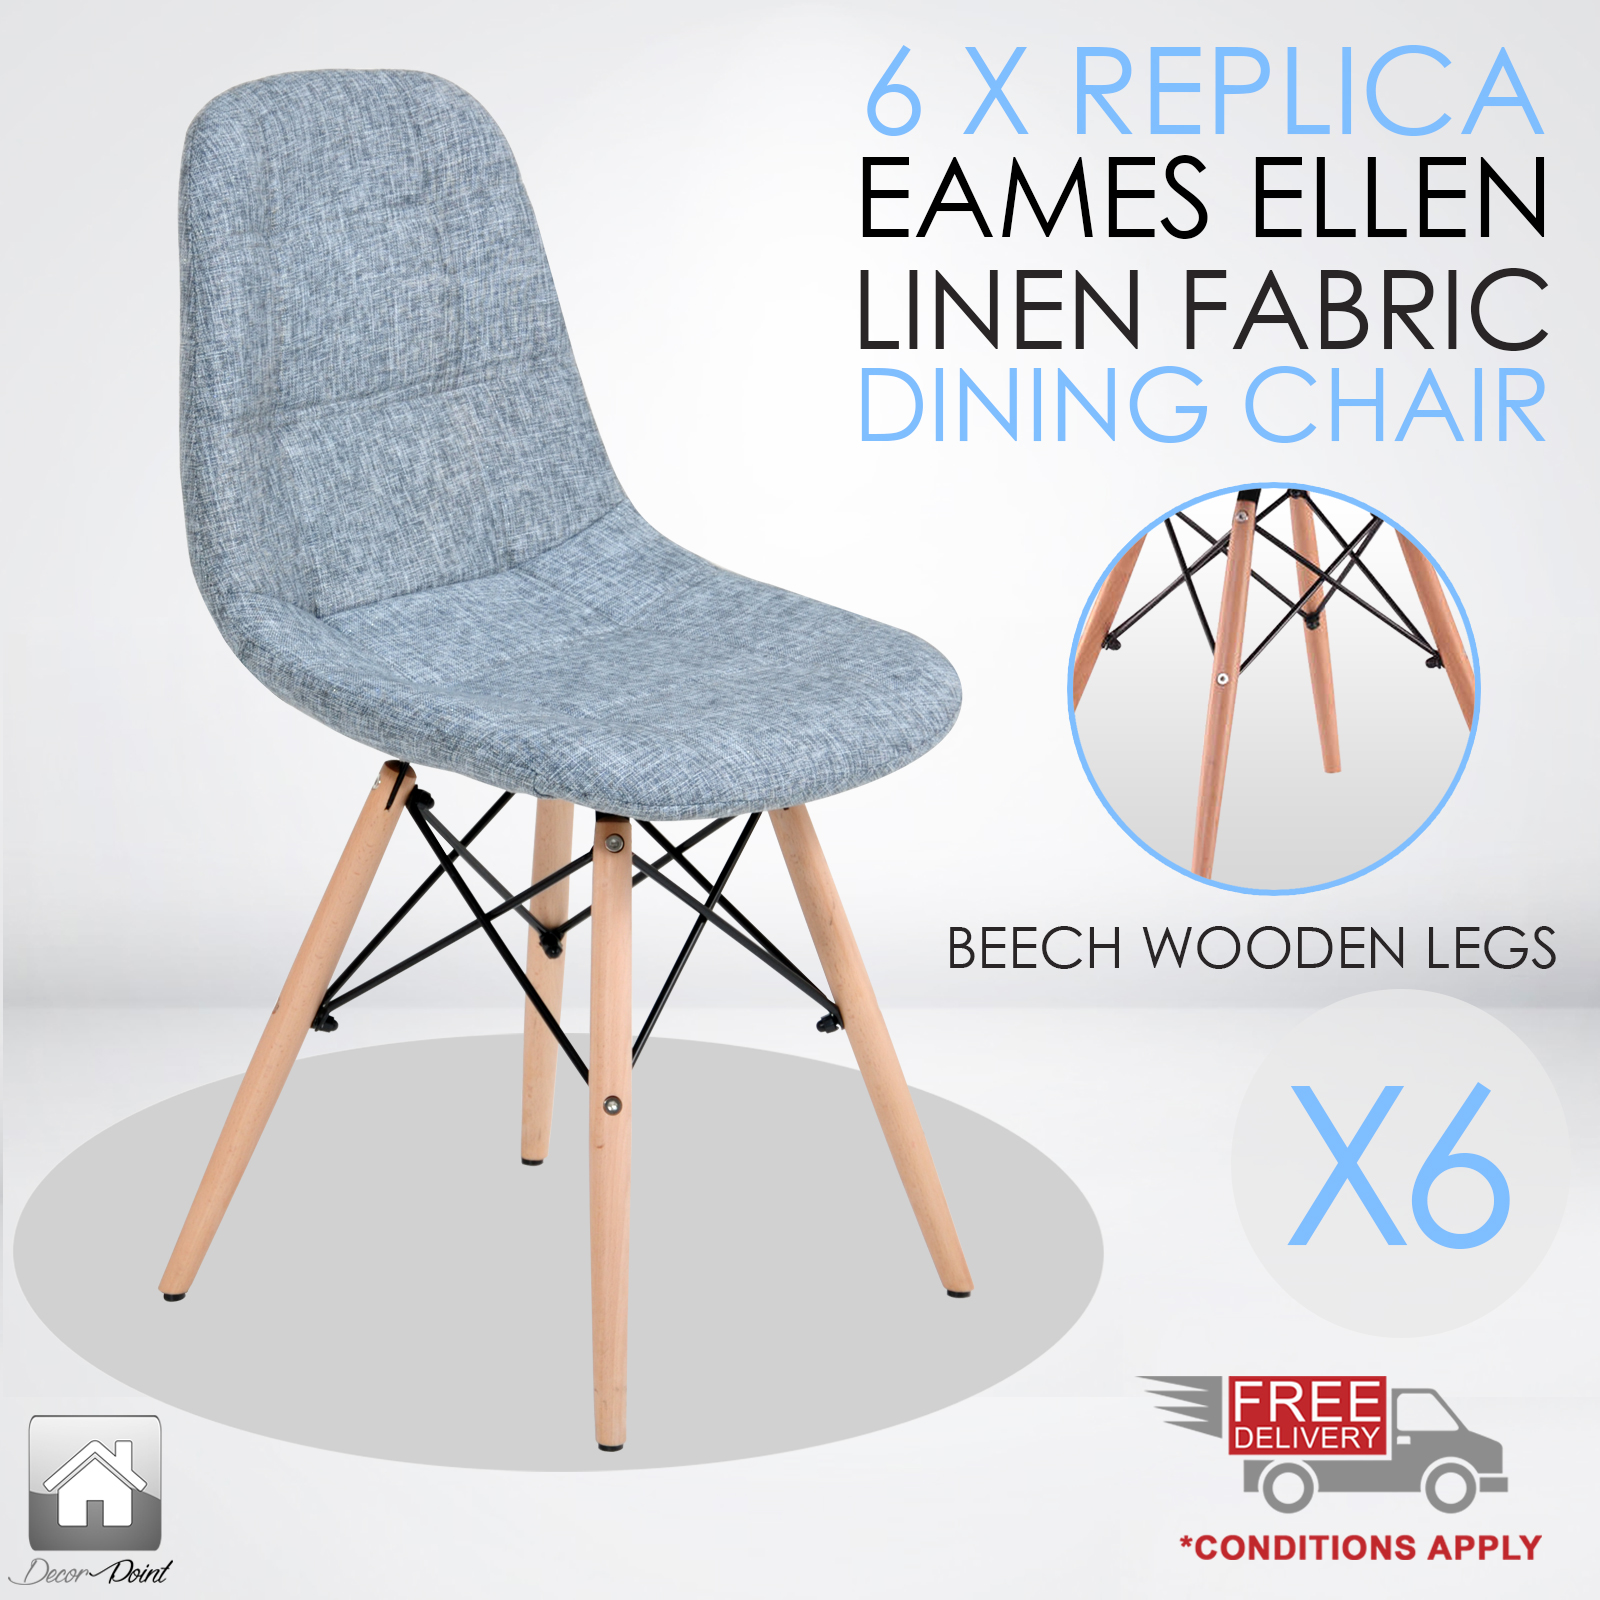 6 x Replica Eames Ellen Linen Fabric Dining Chair Grey  : Eames Ellen Grey Main6 from www.ebay.com.au size 1600 x 1600 jpeg 848kB